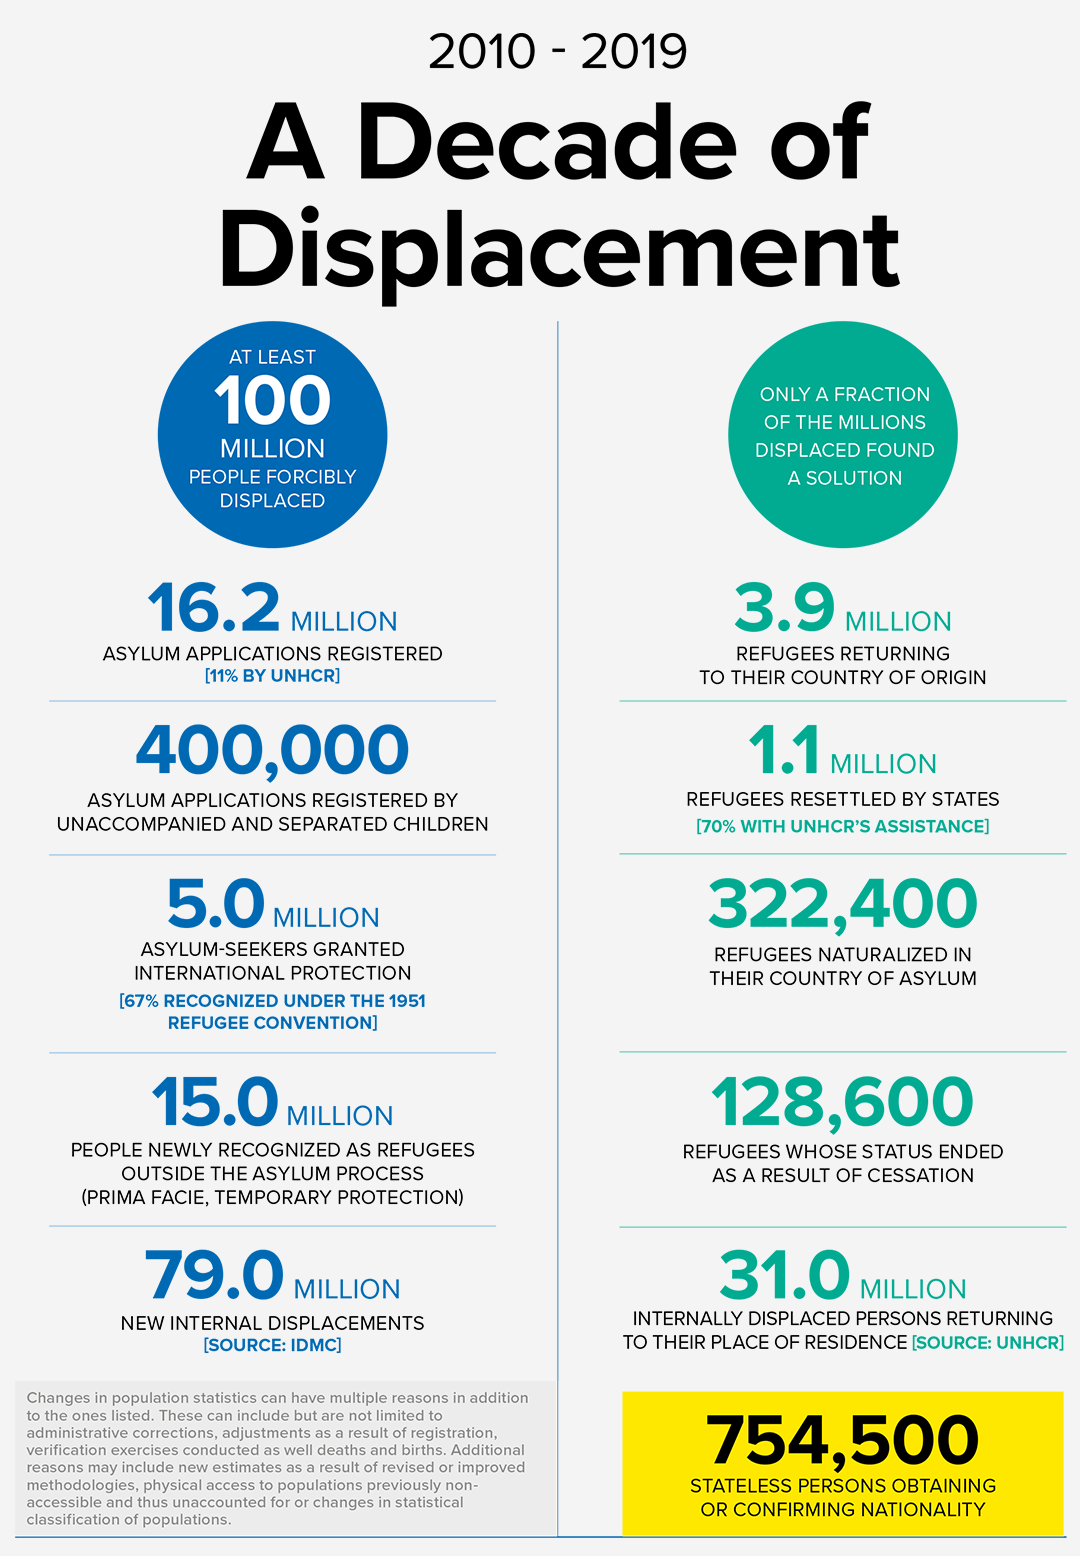 A DECADE OF DISPLACEMENT